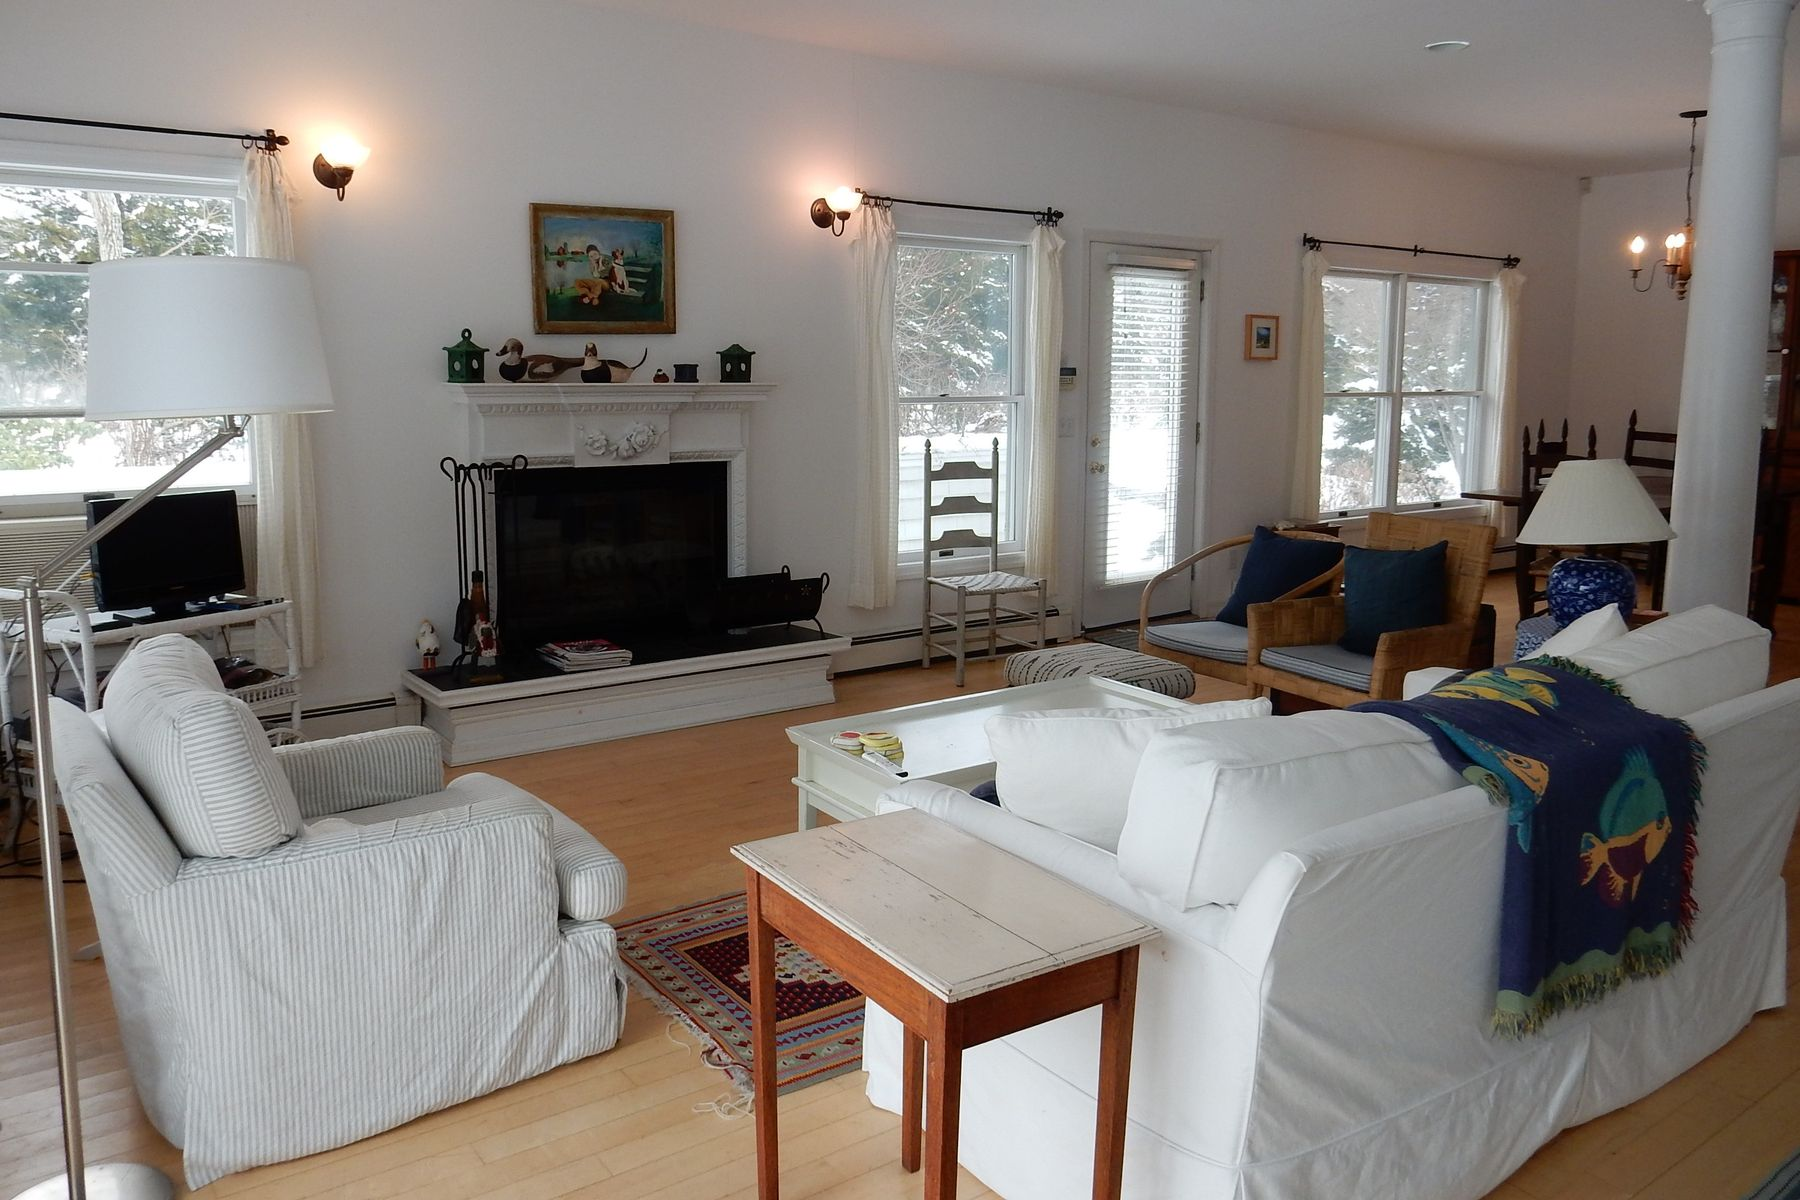 Single Family Home for Rent at Sagaponack North Pool and Tennis Sagaponack, New York 11962 United States